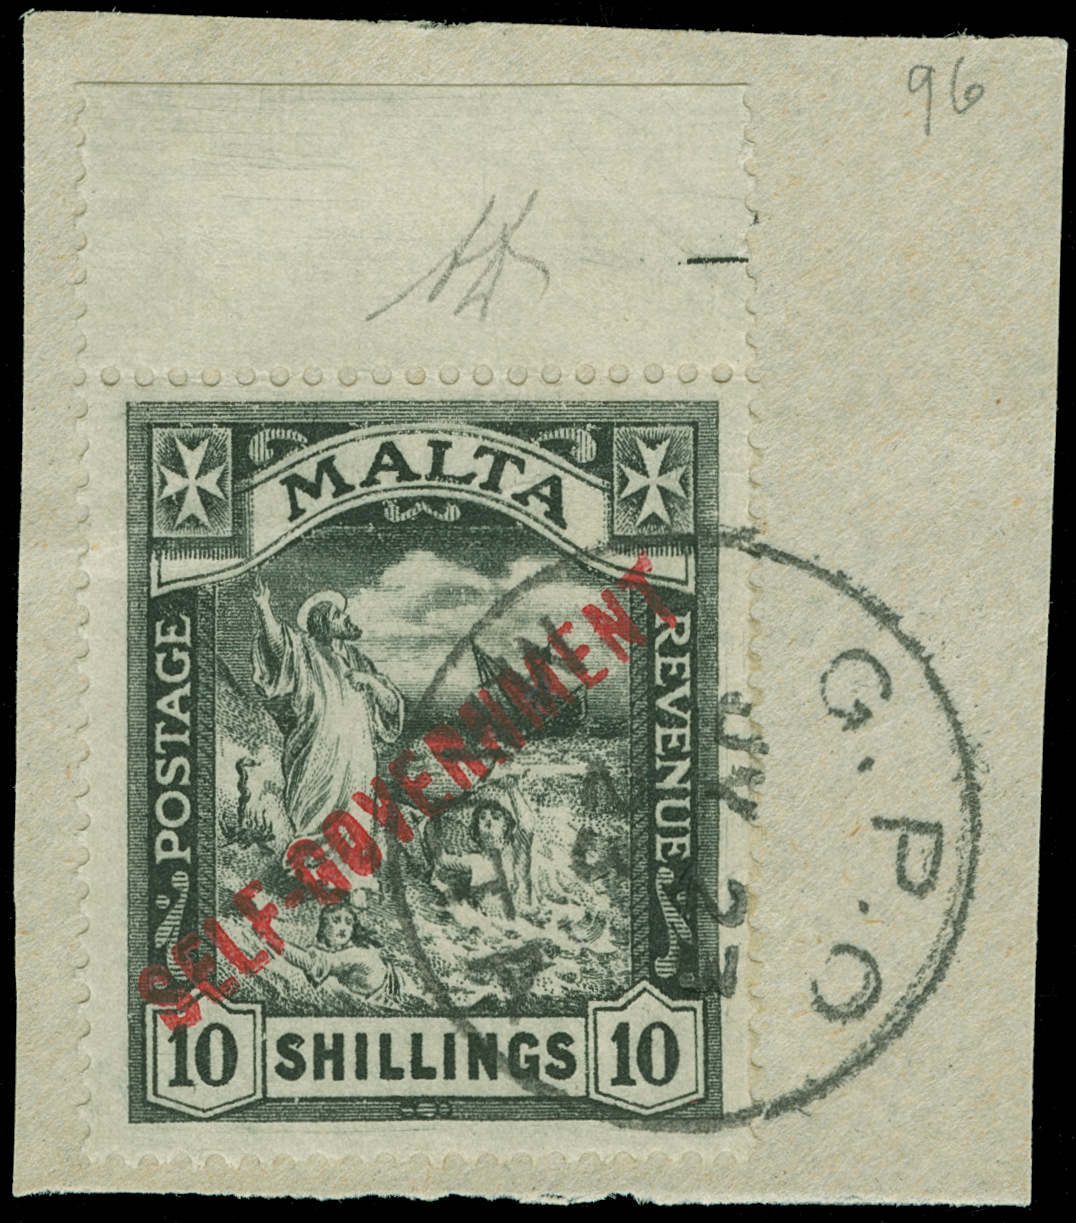 Lot 1002 - sierra leone  -  COLONIAL STAMP CO. Auction #130 - Public Auction